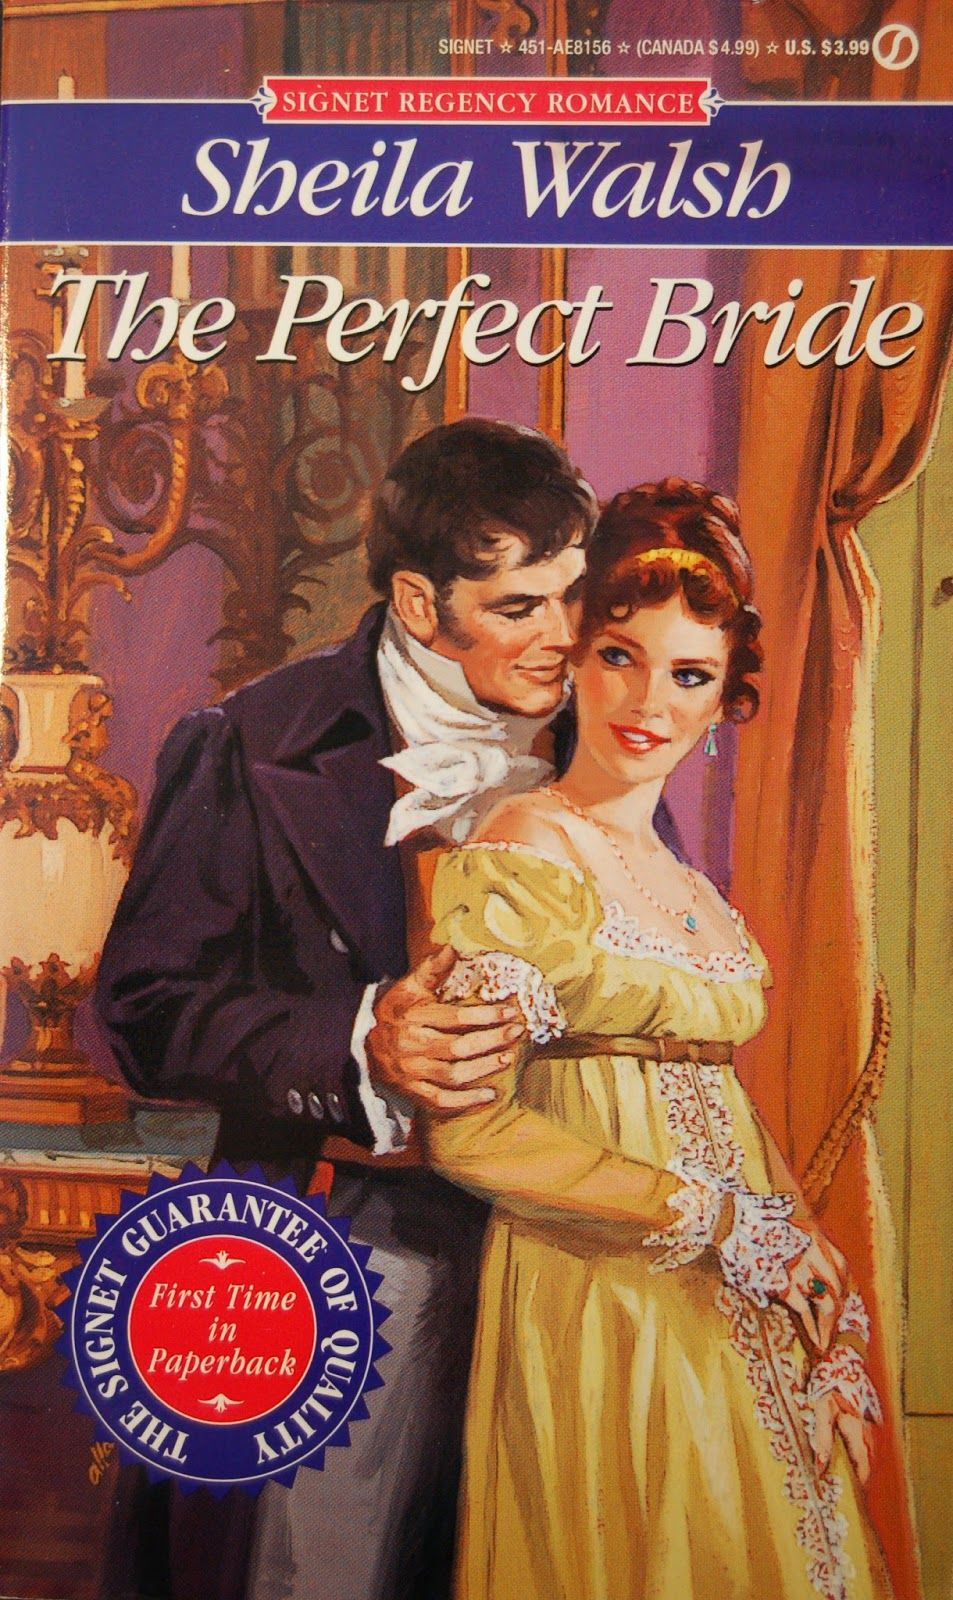 The Perfect Bride (Signet Regency Romance)